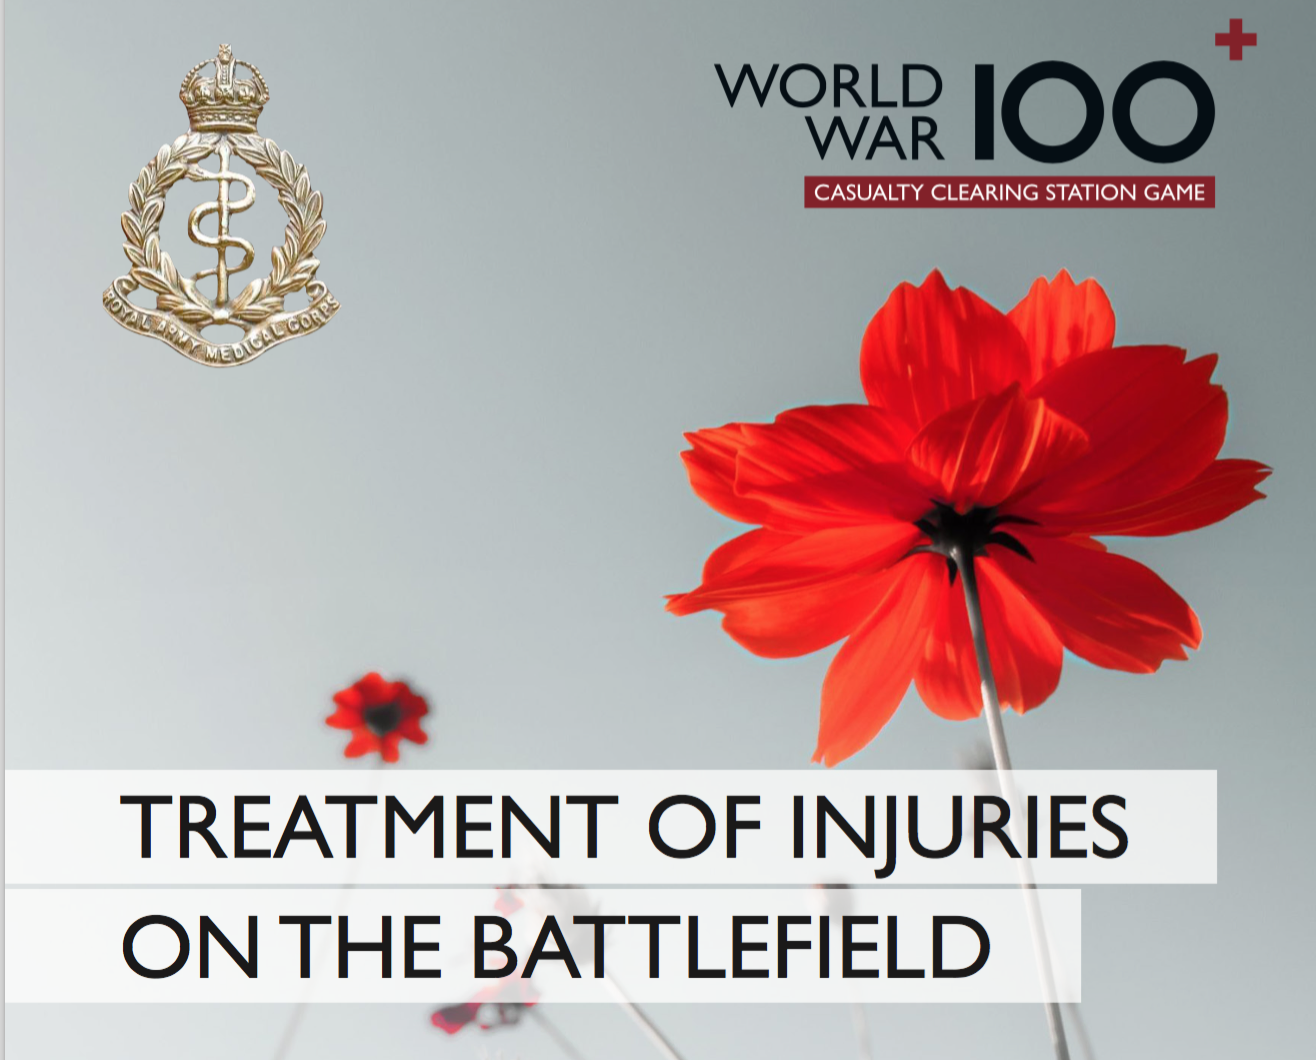 Treatment of Injuries on the Battlefield